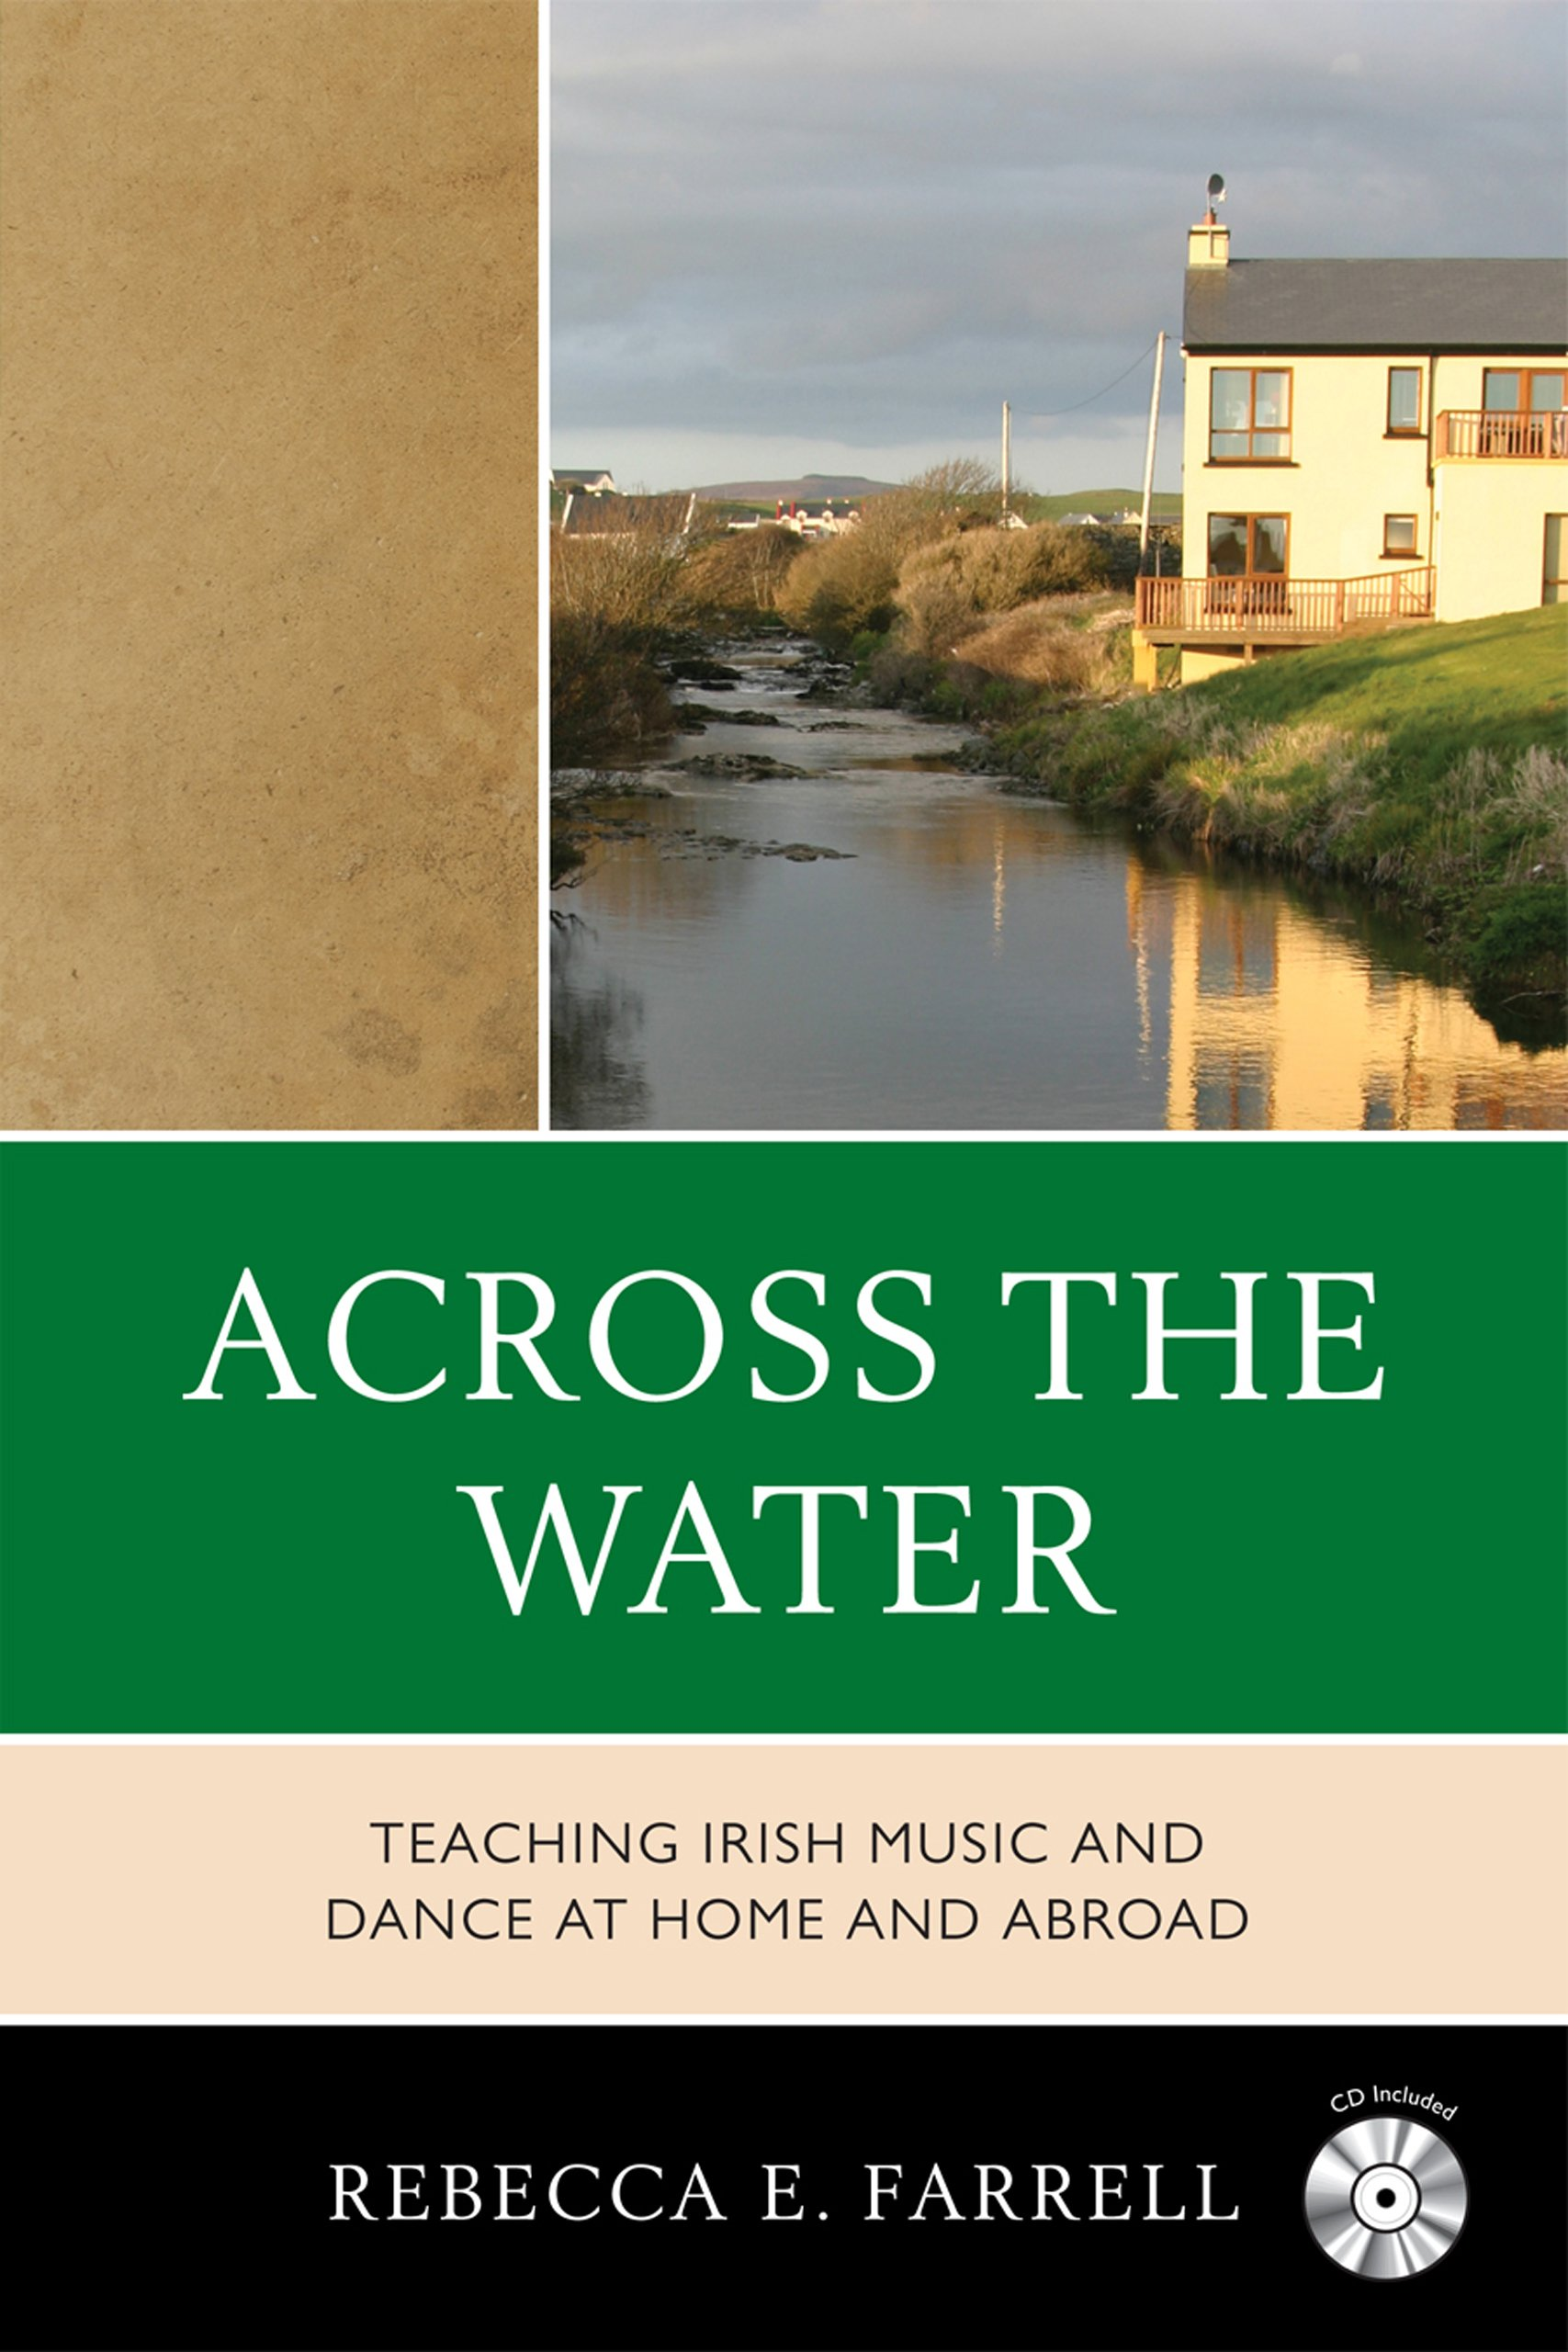 Across the Water: Teaching Irish Music and Dance at Home and Abroad PDF